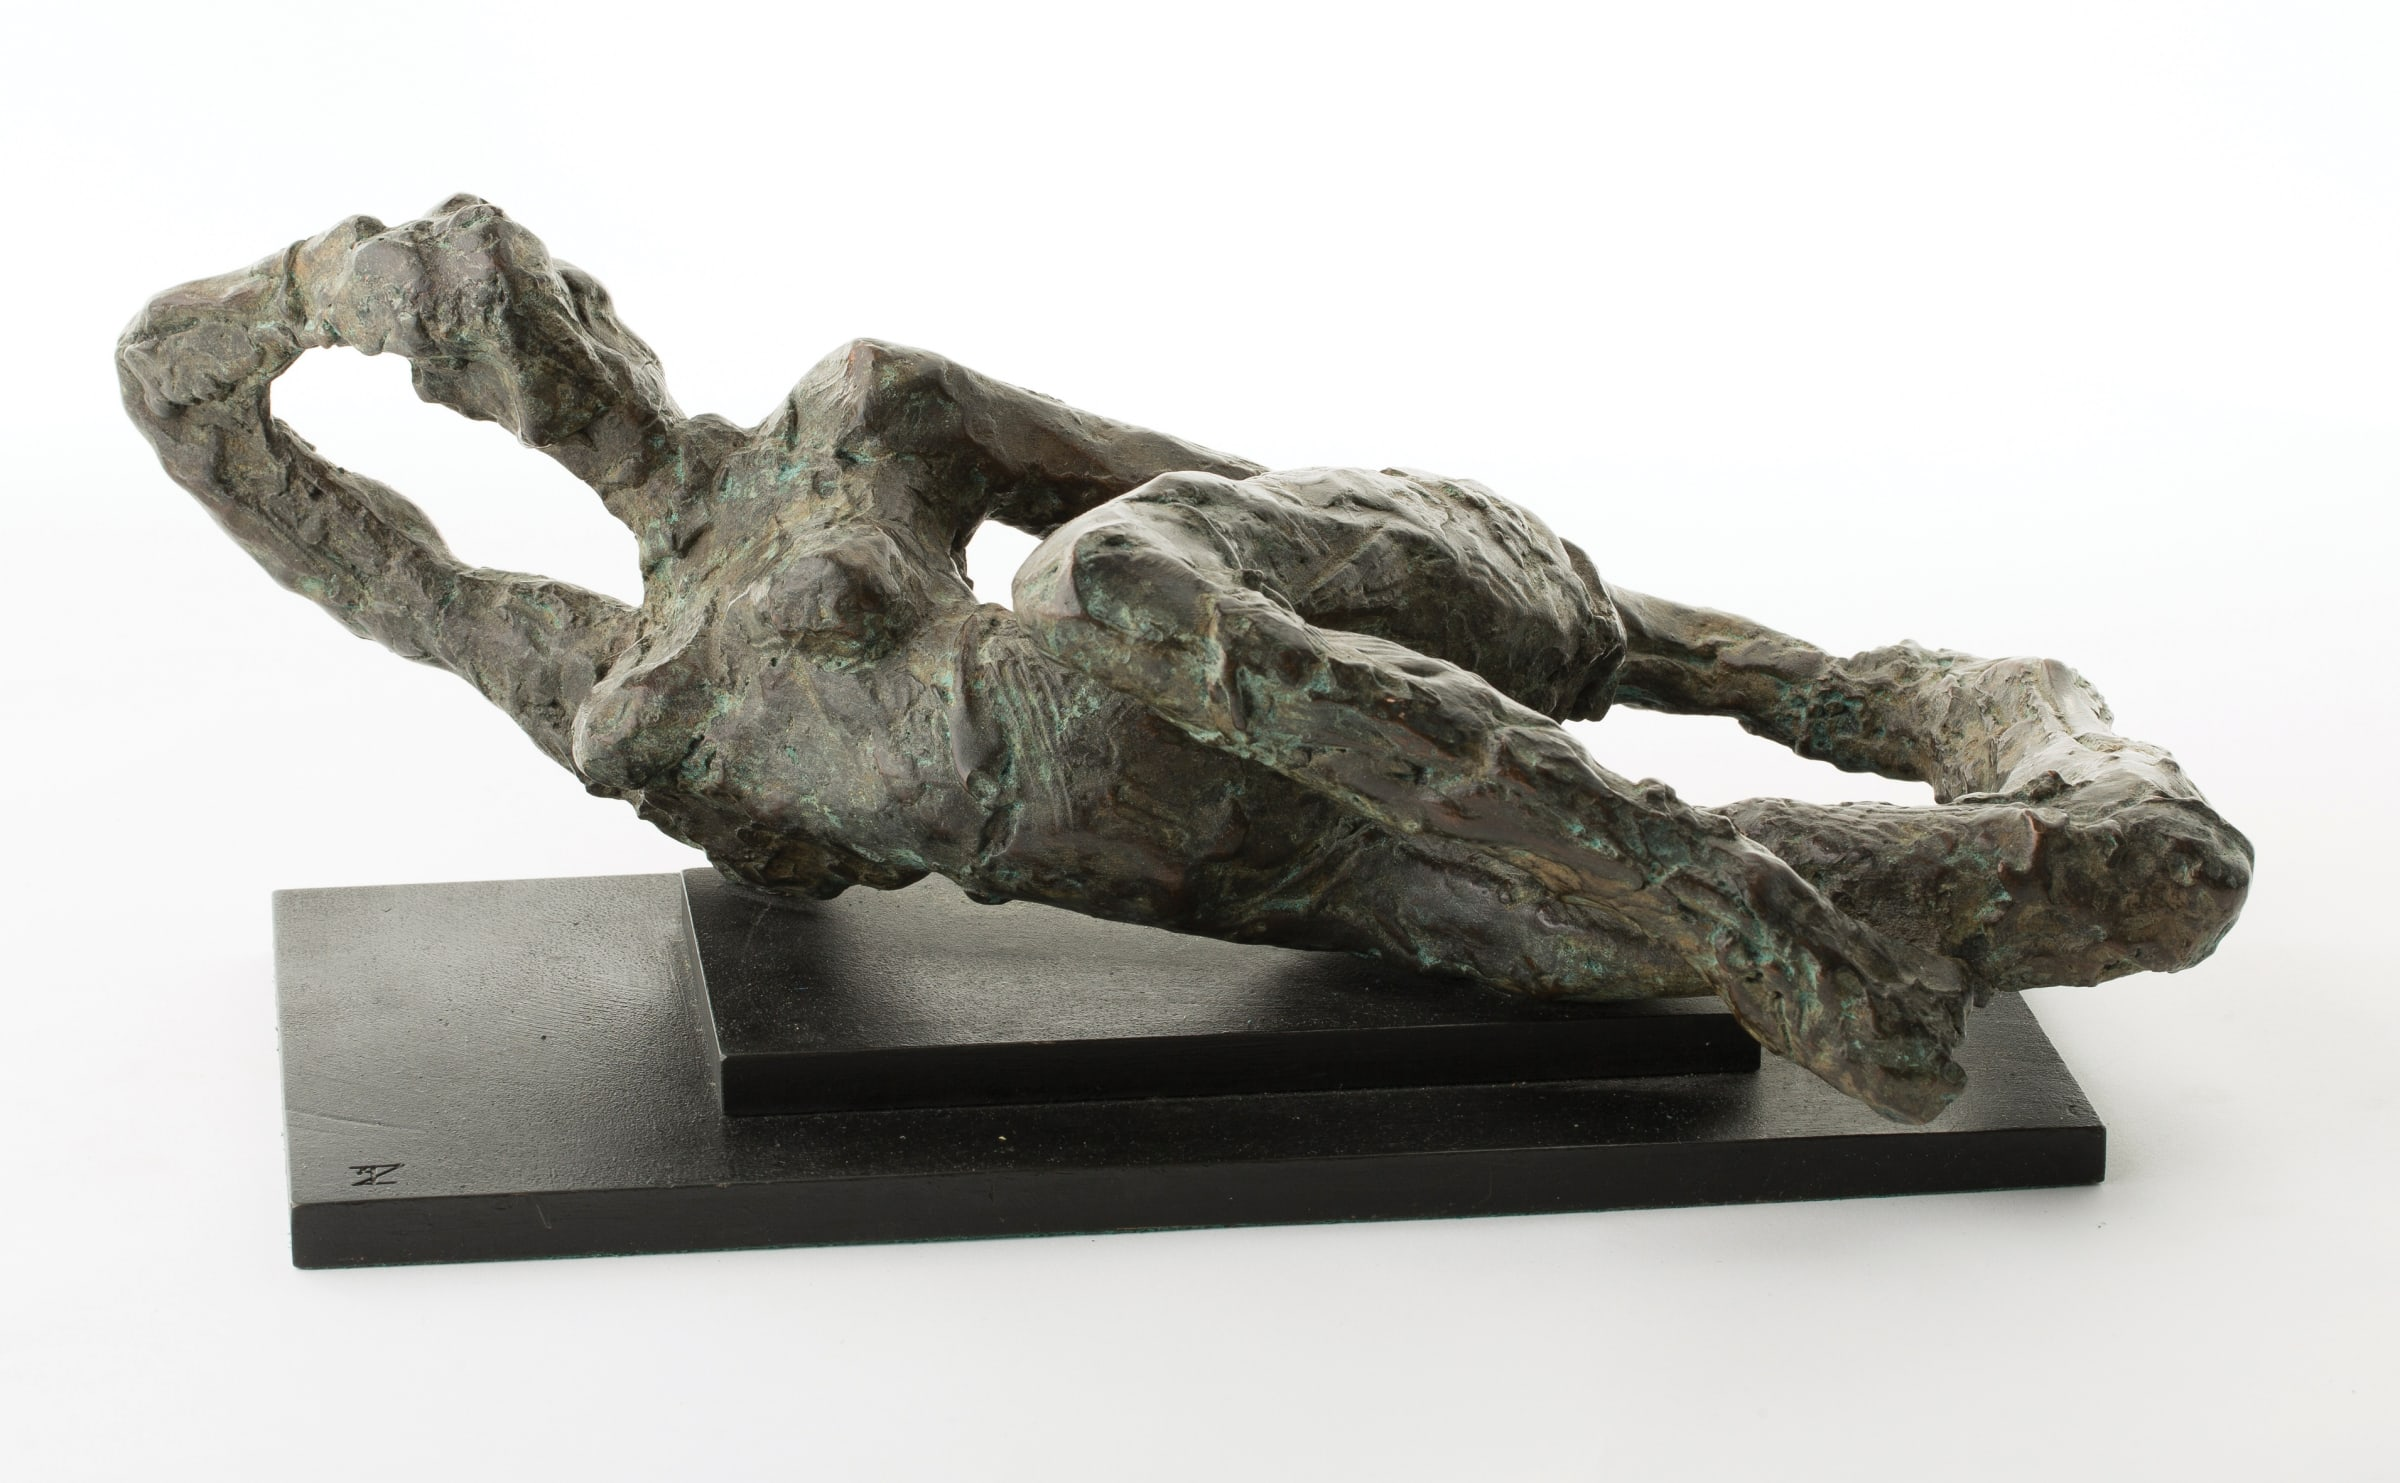 "<span class=""link fancybox-details-link""><a href=""/artists/78-ivor-abrahams/works/9825-ivor-abrahams-reclining-figure-1986/"">View Detail Page</a></span><div class=""artist""><span class=""artist""><strong>IVOR ABRAHAMS</strong></span></div>